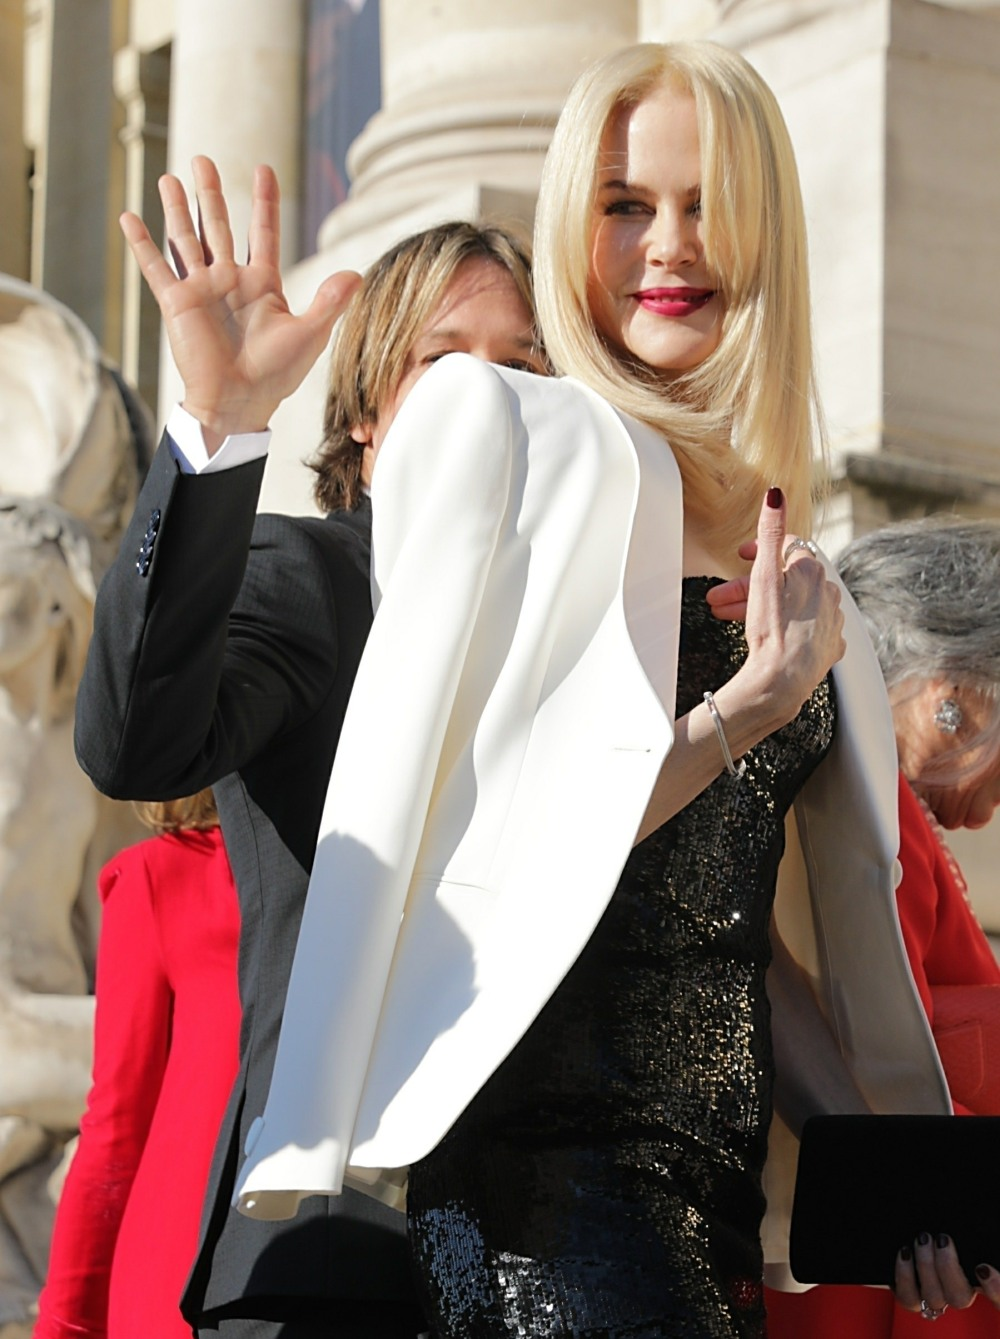 Nicole Kidman and Keith Urban seen arriving at Giorgio Armani Prive show during Haute Couture Week in Paris